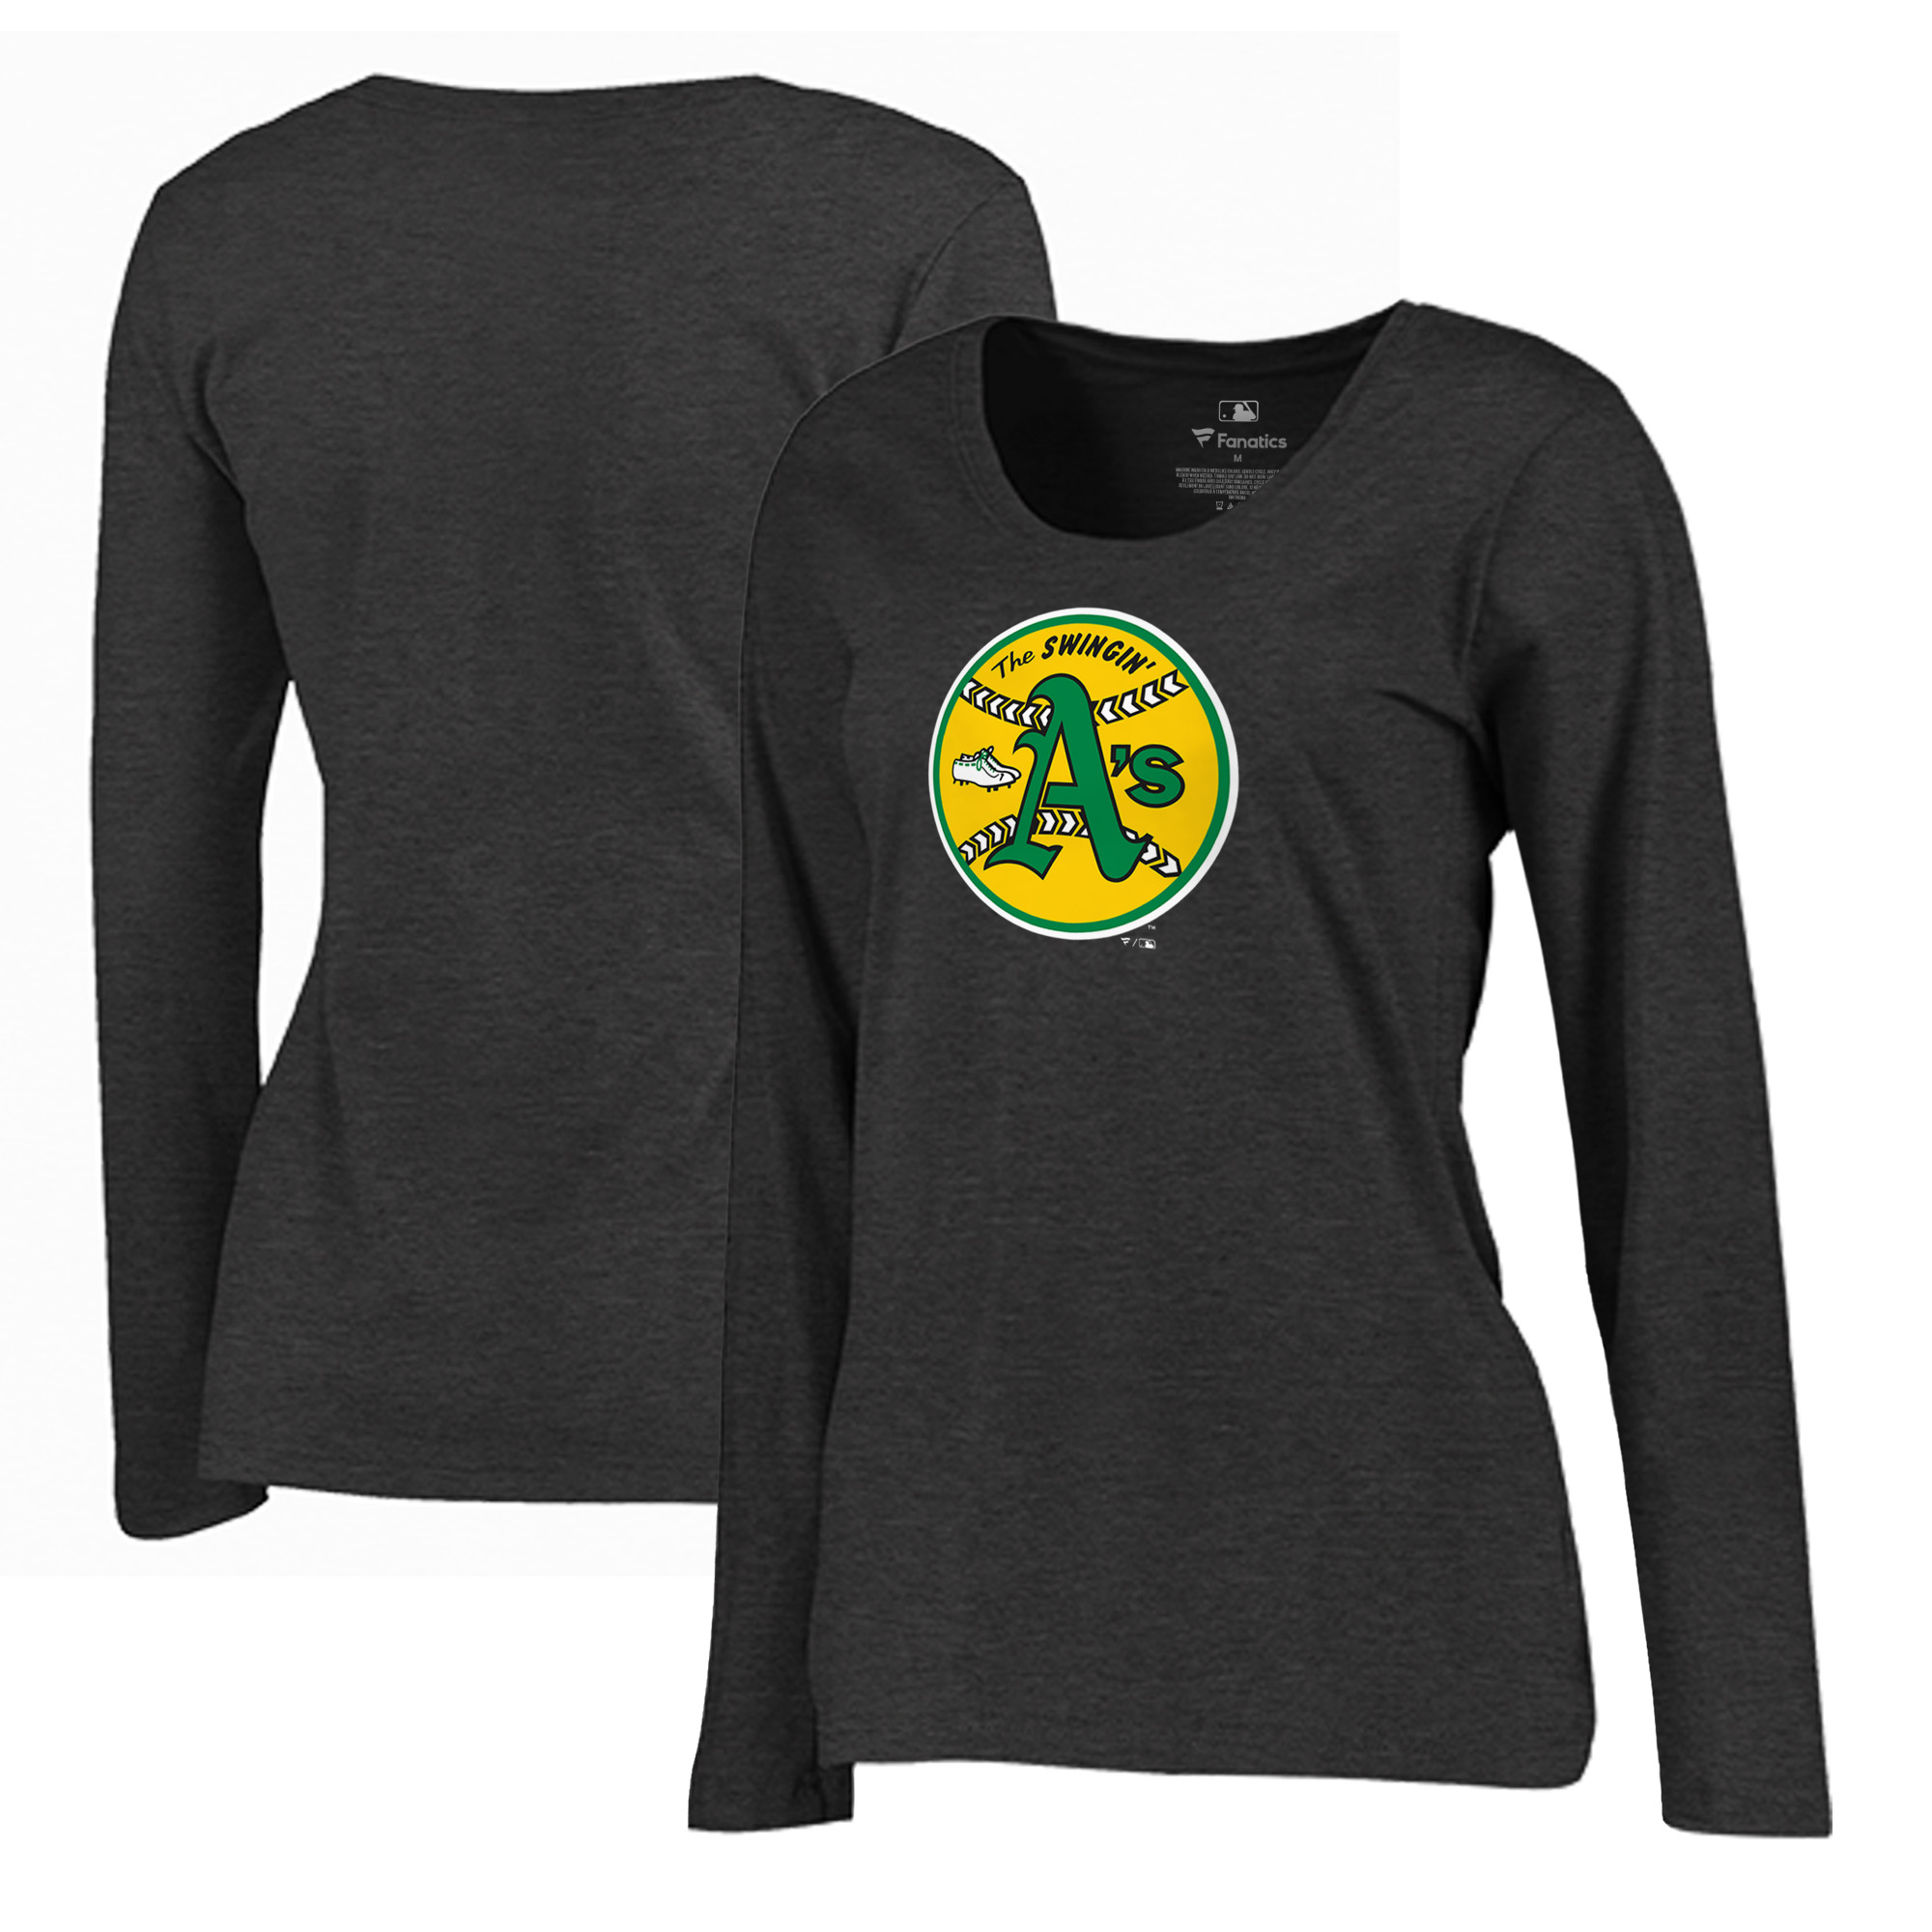 Oakland Athletics Fanatics Branded Women's Plus Size Cooperstown Collection Huntington Long Sleeve T-Shirt - Heathered Gray